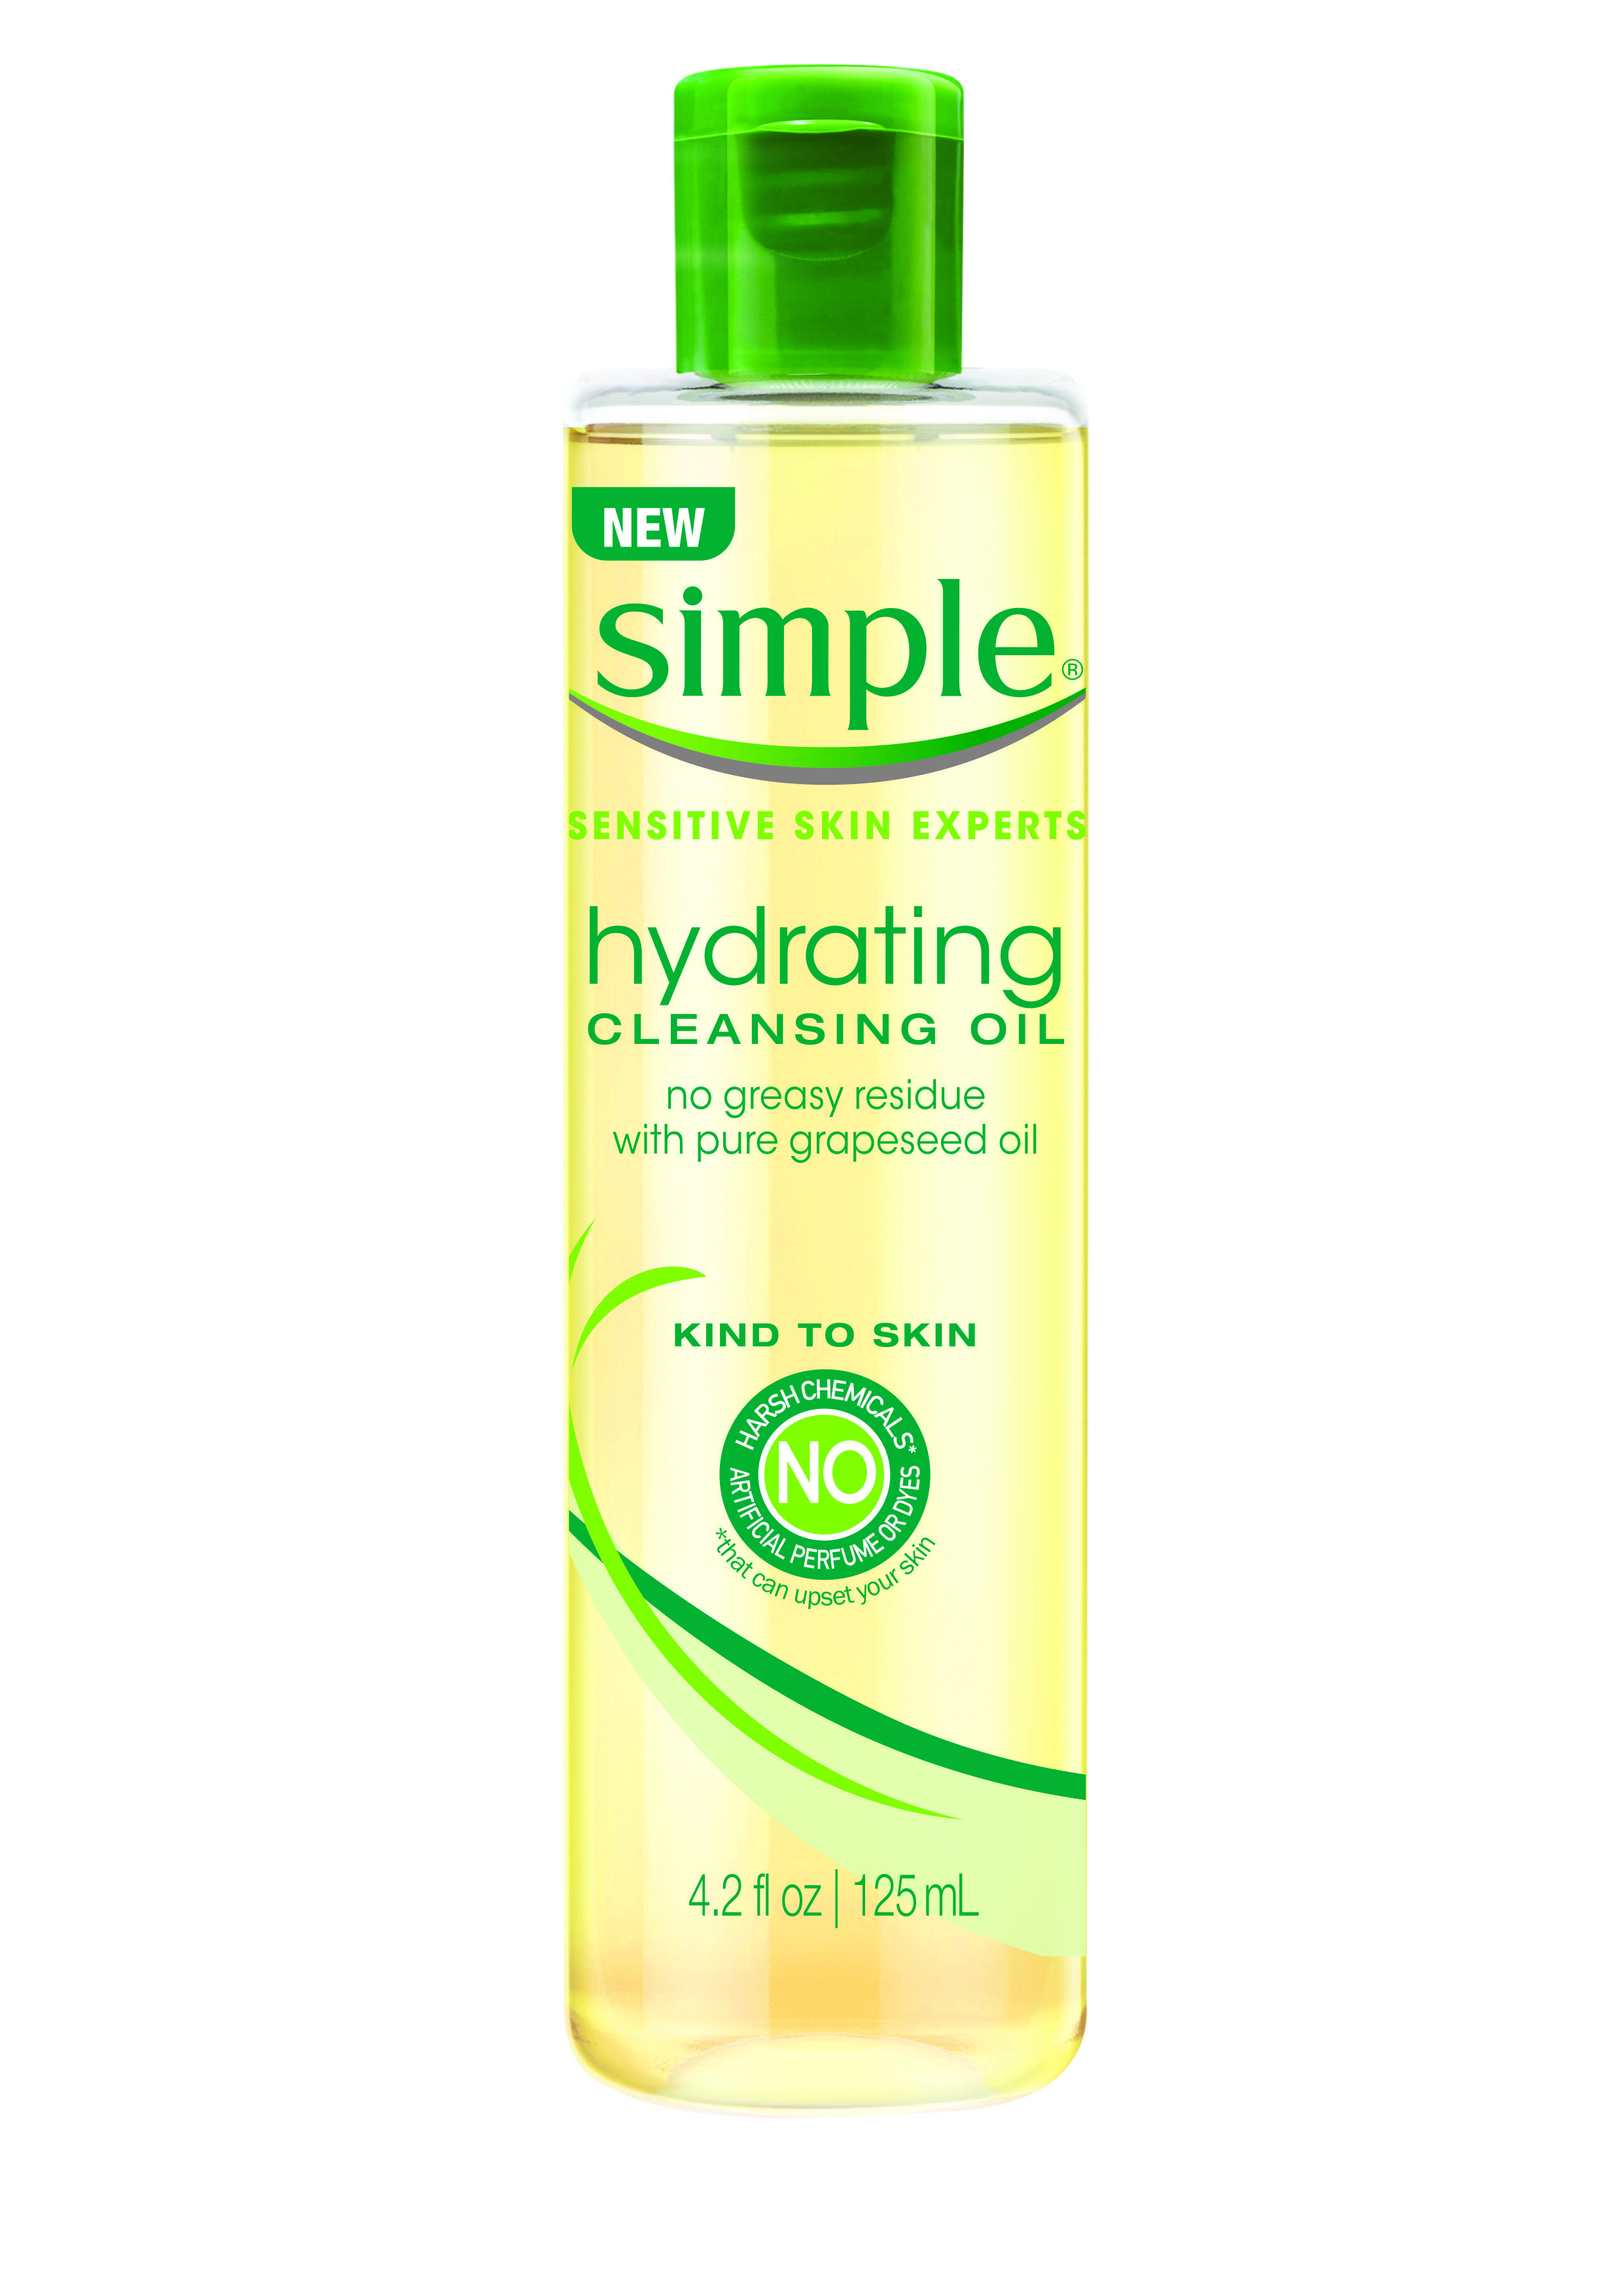 Simple Hydrating Cleansing Oil (With images) Skin